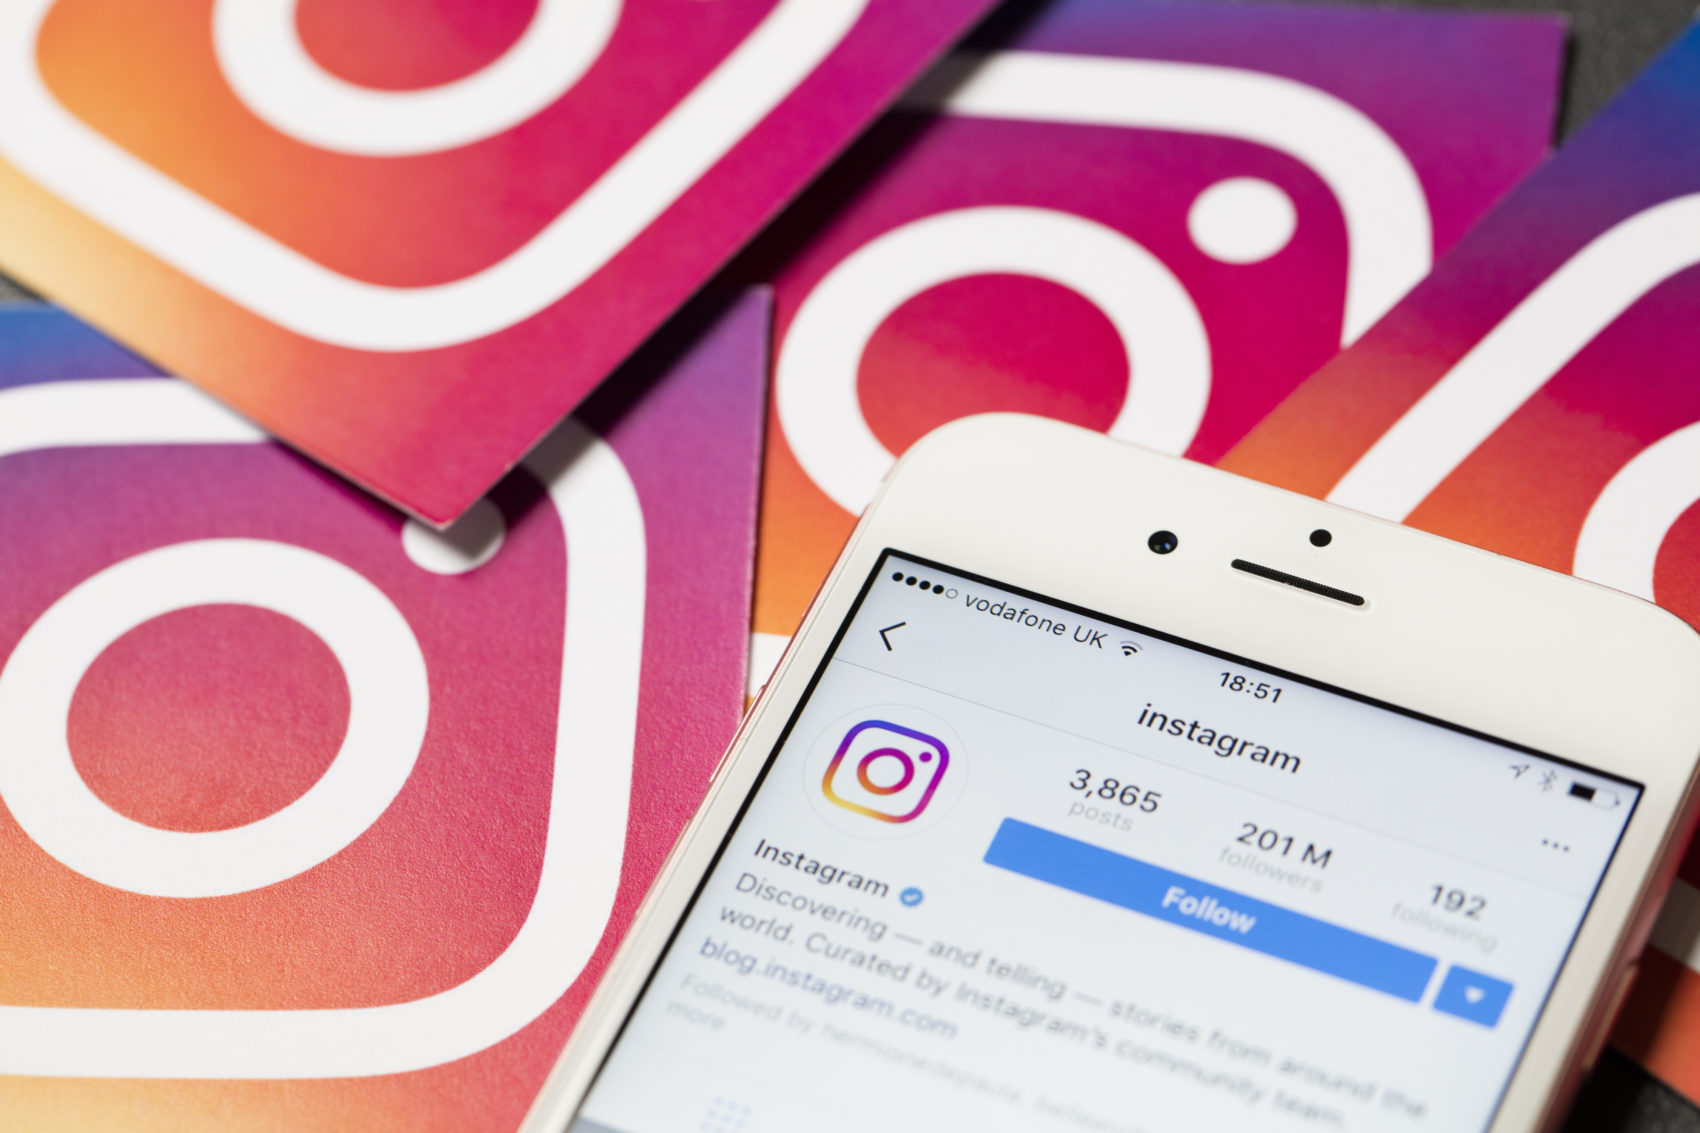 Instagram is introducing a new set of tools, which are designed to clean up toxic content (Photo: Shutterstock)